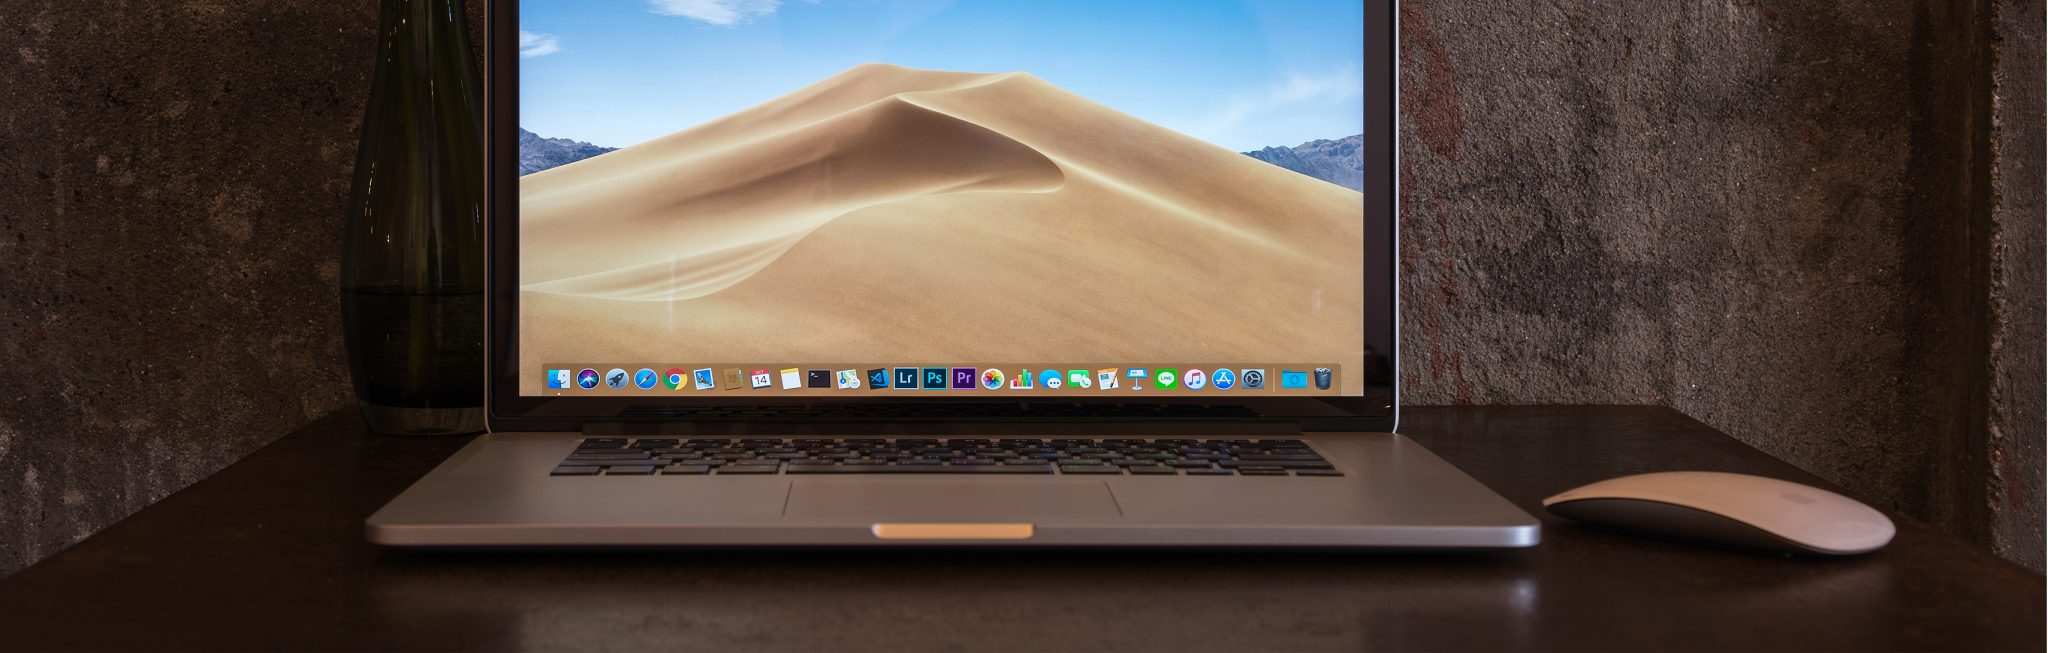 MacOS Mojave: Top 6 business features you need to know